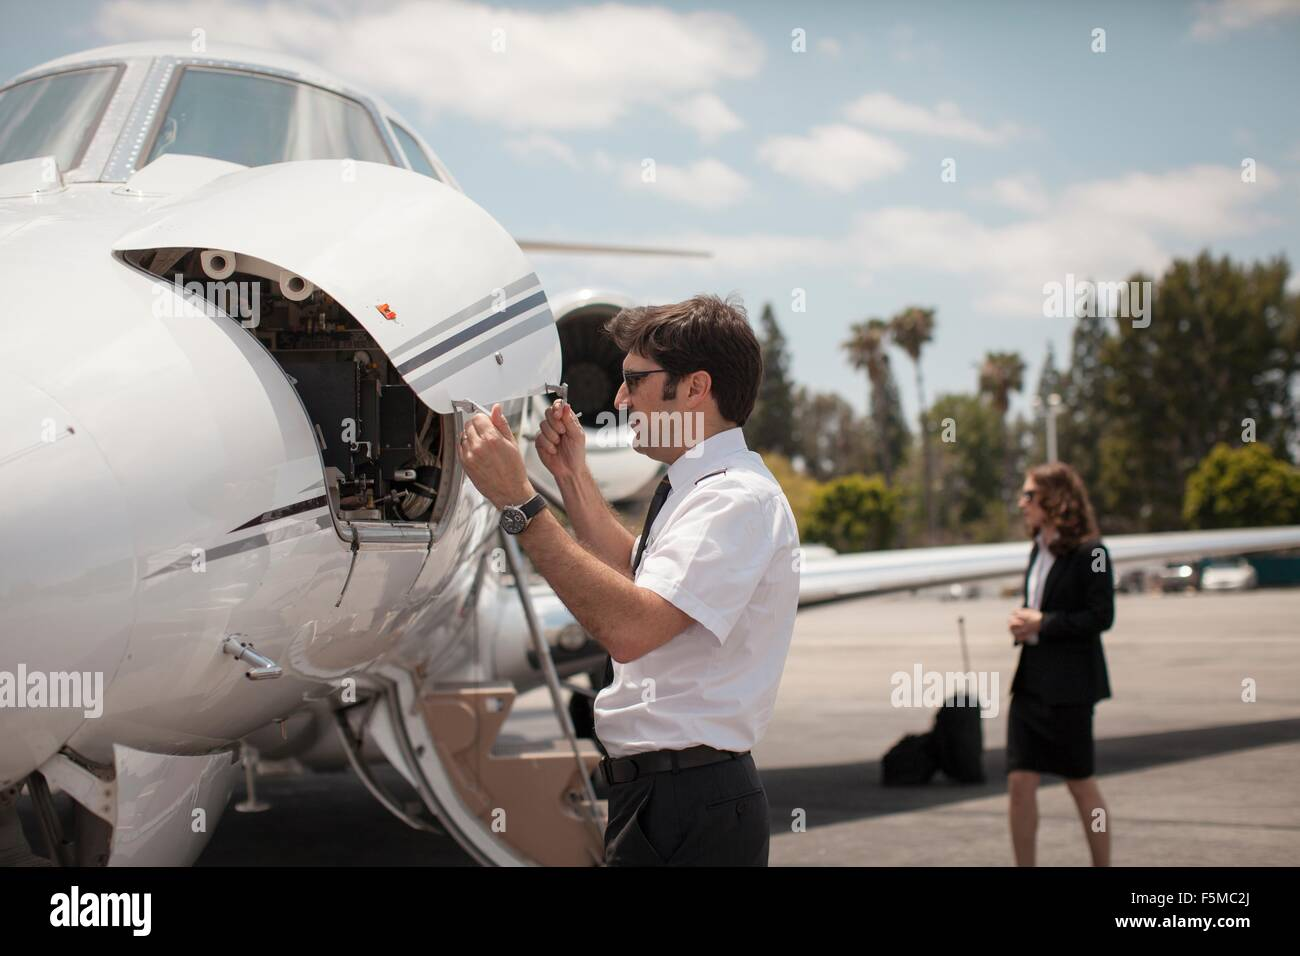 Male pilot checking private jet at airport - Stock Image